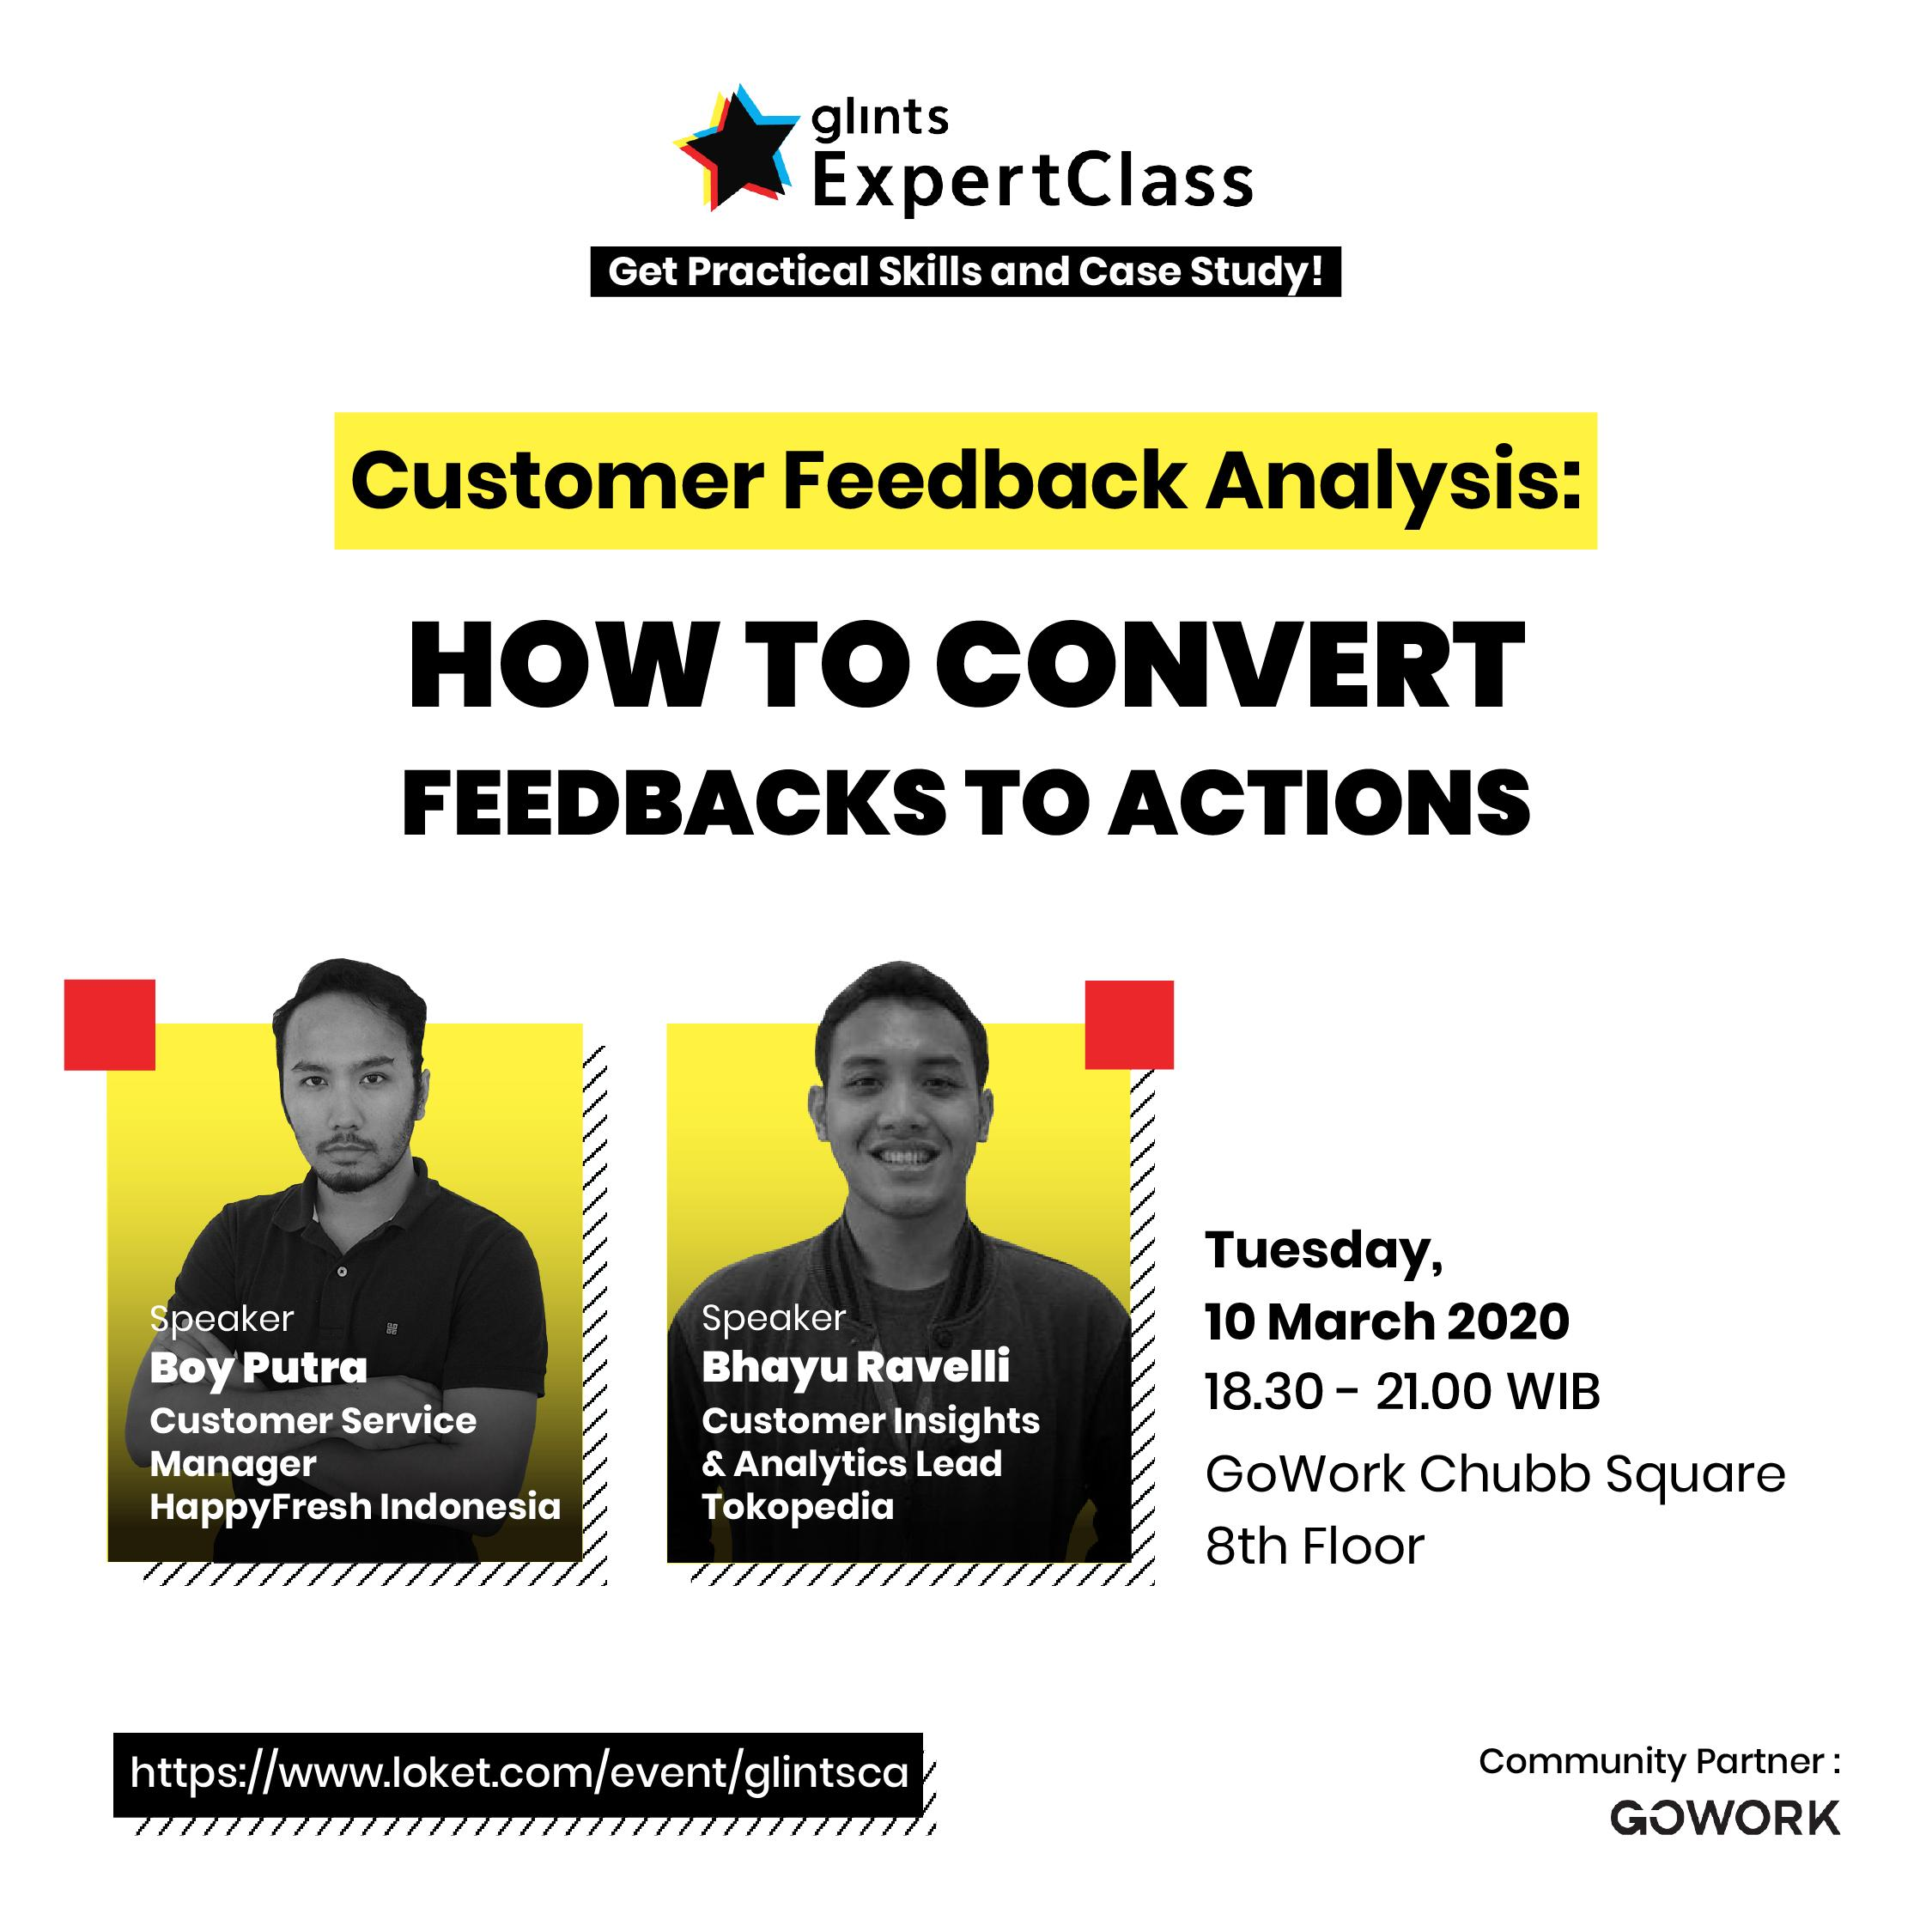 Glints Expert Class - Customer Feedback Analysis : How To Convert Feedbacks To Actions